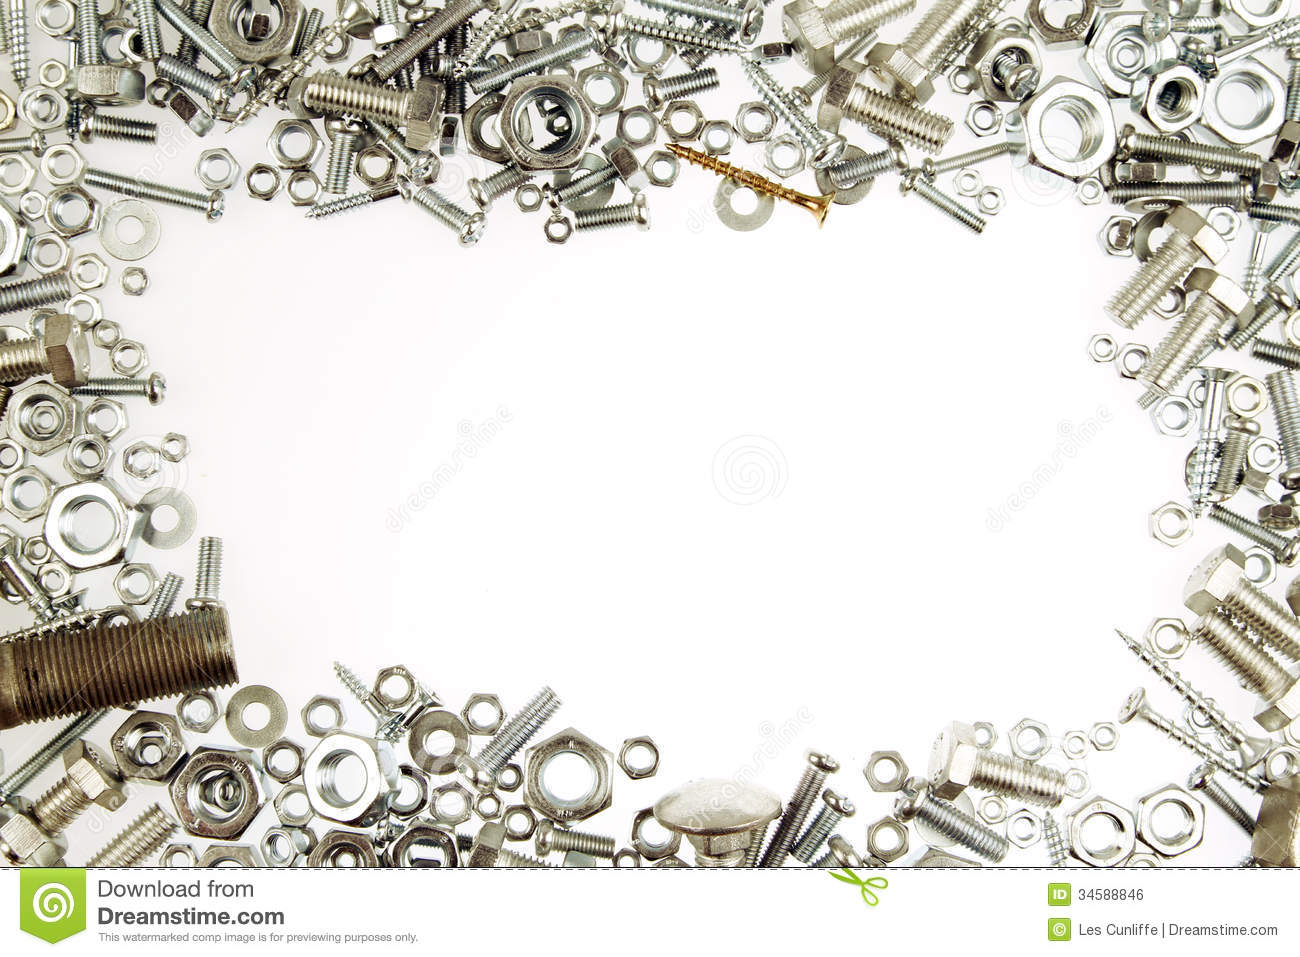 Nuts And Bolts Royalty Free Stock Image   Image  34588846